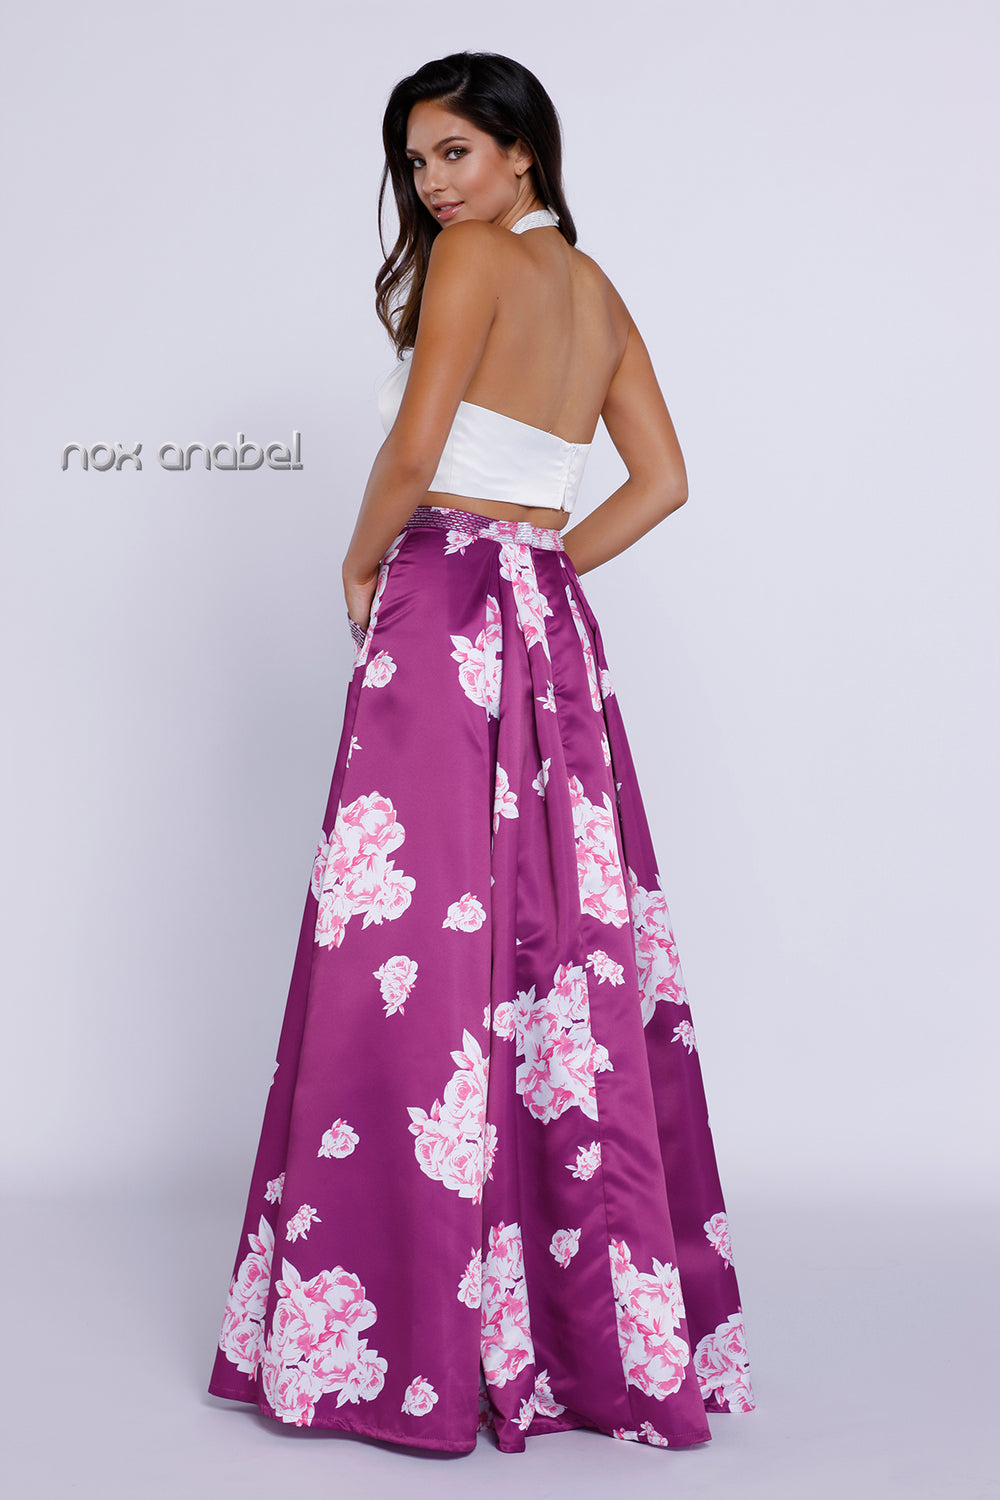 TWO-PIECE SLEEK HALTER TOP WITH A-LINE FLORAL EVENING GOWN #8245